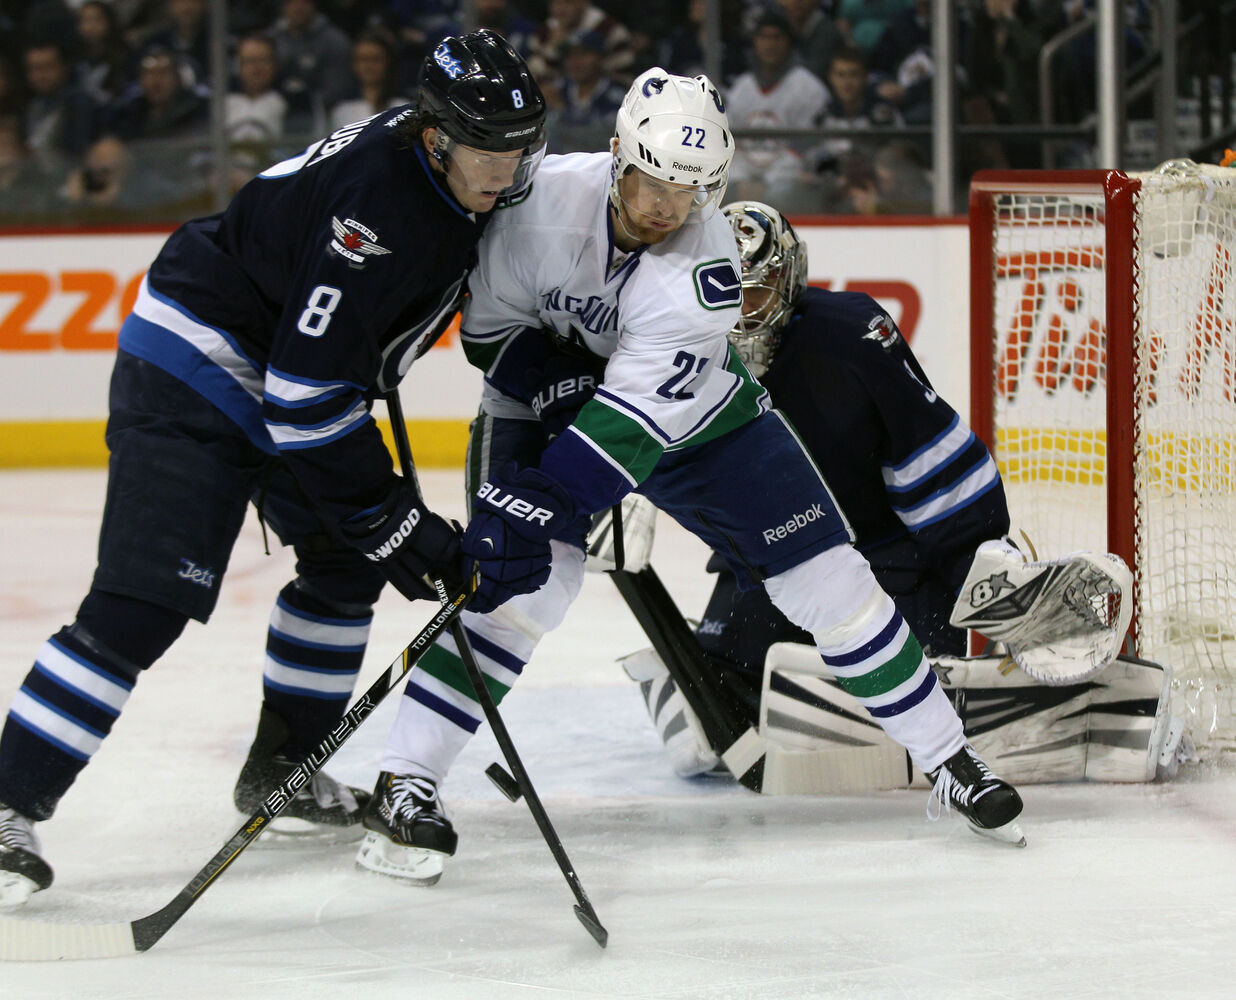 Winnipeg Jets' Jacob Trouba ties it up with Vancouver Canucks' Daniel Sedin during the first period of Friday's game in Winnipeg. (JOE BRYKSA/ WINNIPEG FREE PRESS)